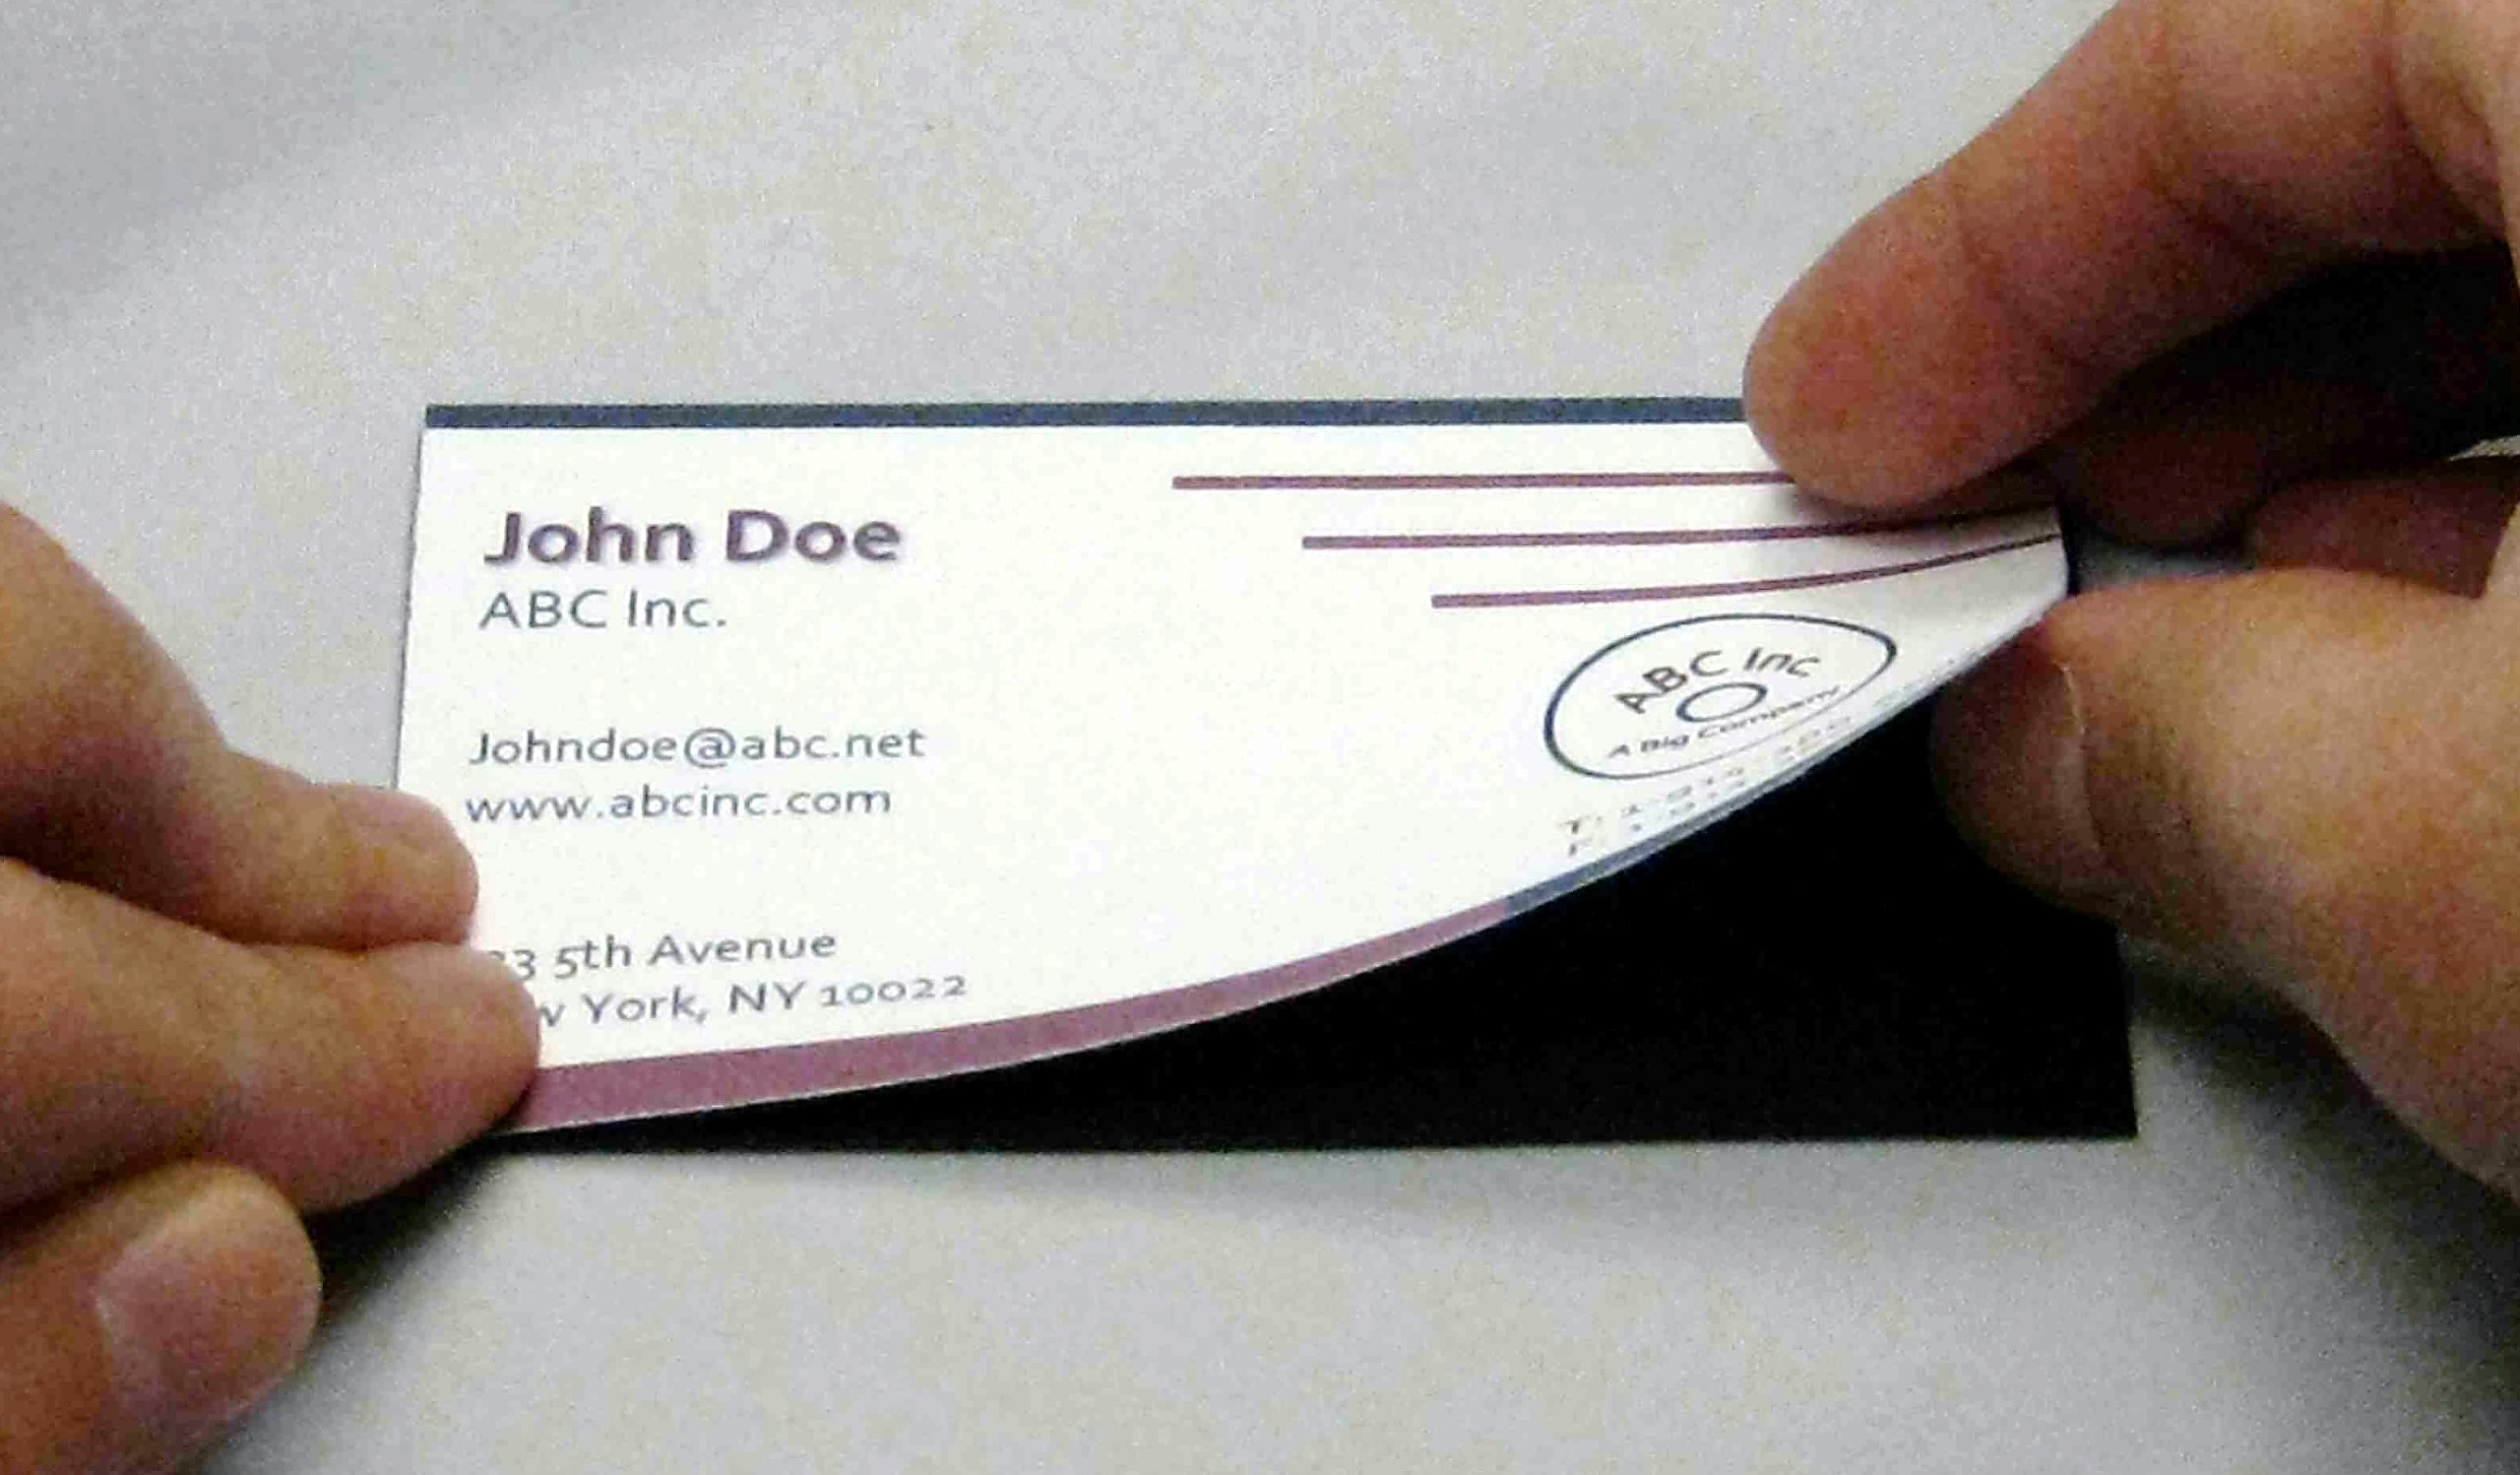 2,000 HIGH-QUALITY SELF-ADHESIVE MAGNETS FOR STANDARD 3.5'' x 2'' BUSINESS CARDS (WITH 14'' X 10'' OPTION)